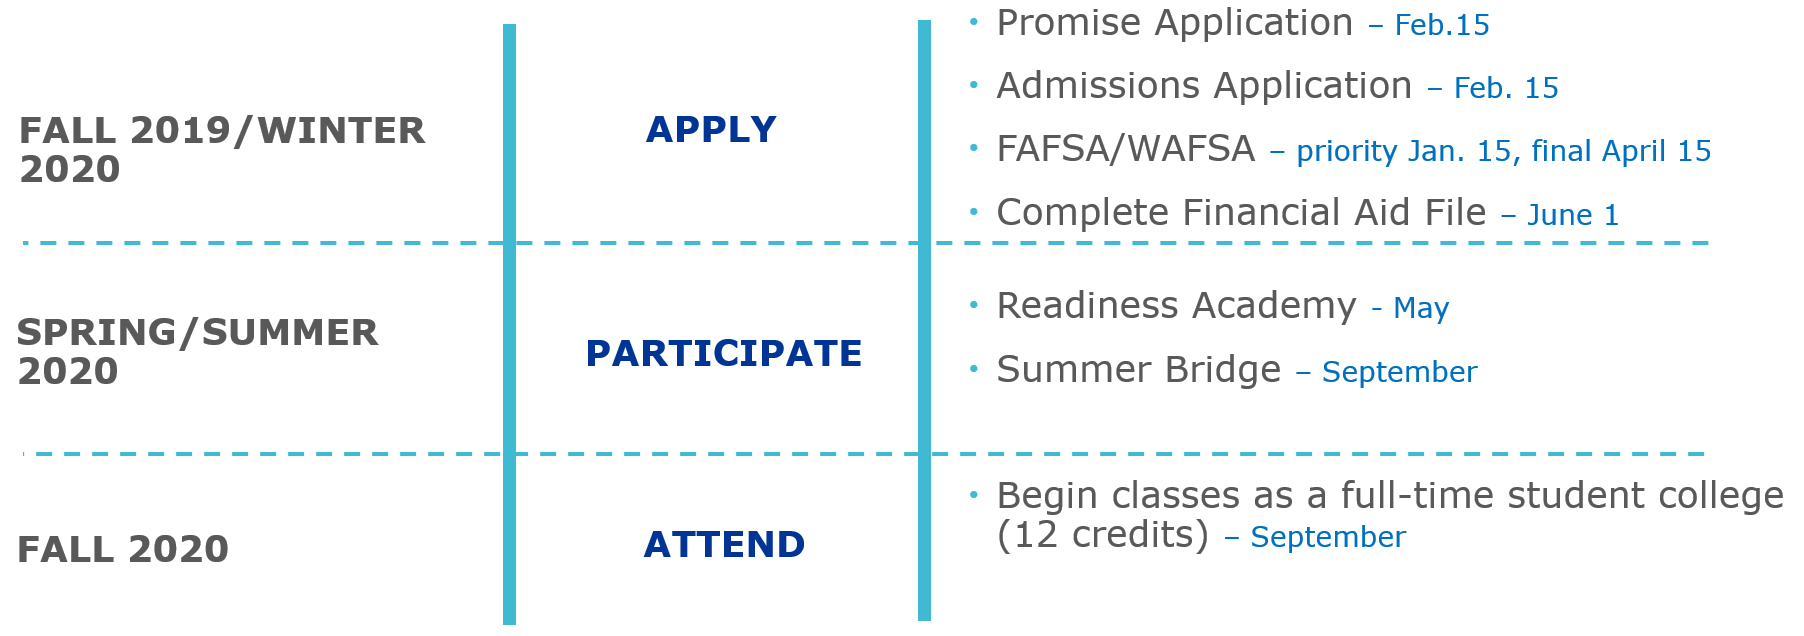 Seattle Promise Deadlines - promise application due Feb. 15. college admission application due Feb. 15. FAFSA/WAFSA priority Jan. 15, final due April 15. Complete Financial Aid File due June 1. Participate in Readiness Academy in May. Attend Summer Bridge